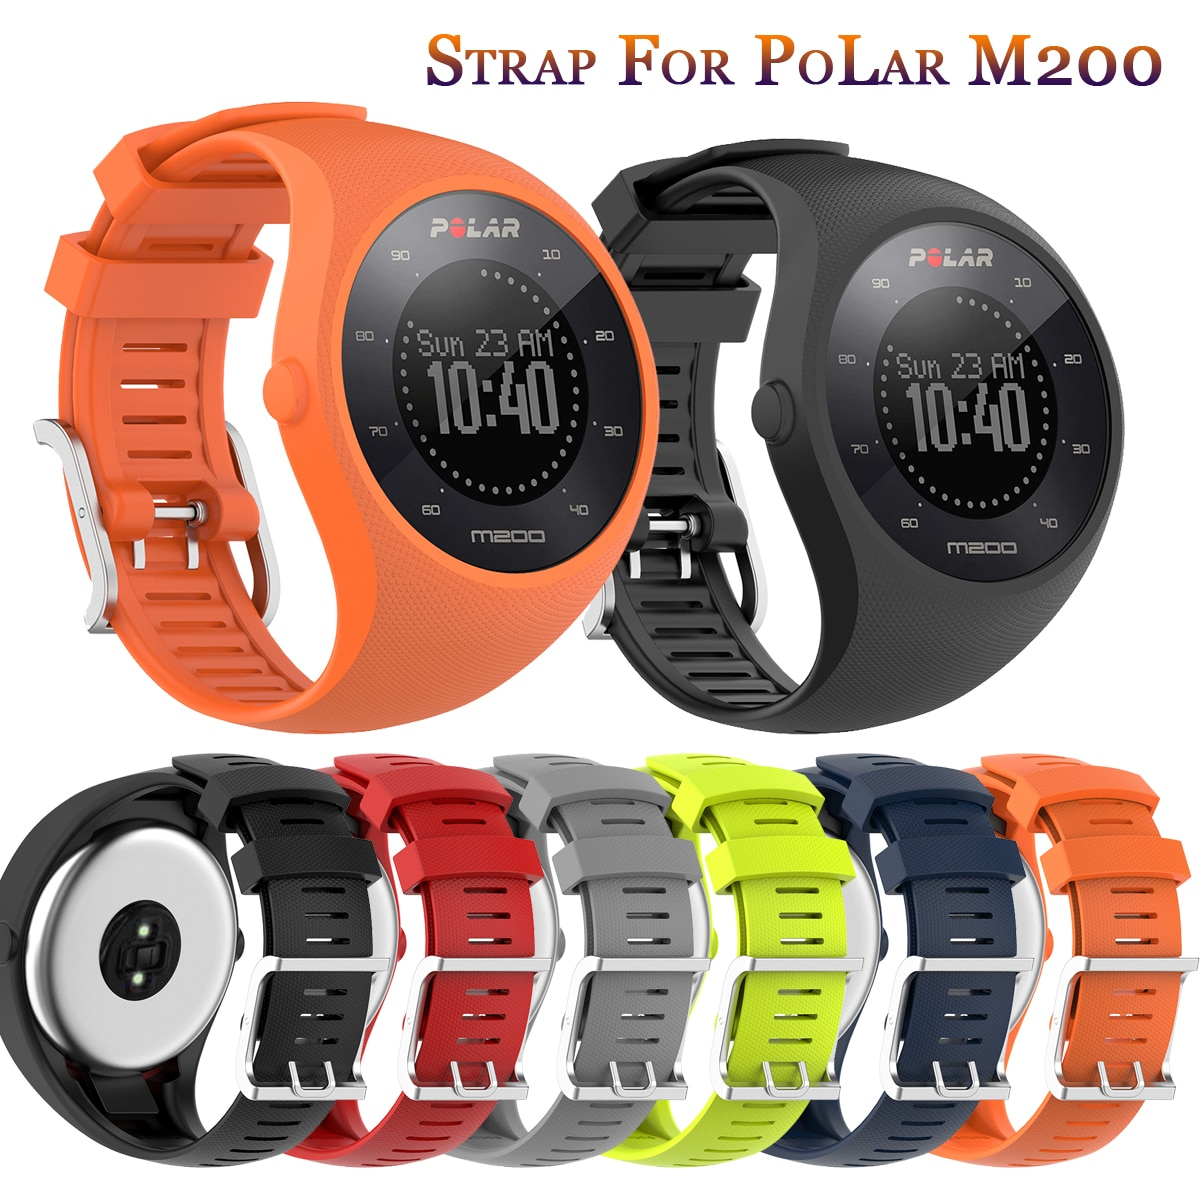 Accessory Soft Silicone Strap For Polar Watch Replacement Watch Band Wrist Strap Sport Bracelet For POLAR M200 GPS Running Watch high quality comfortable silicone replacement wrist watch band for polar v800 smart bracelet with tool smart watch strap